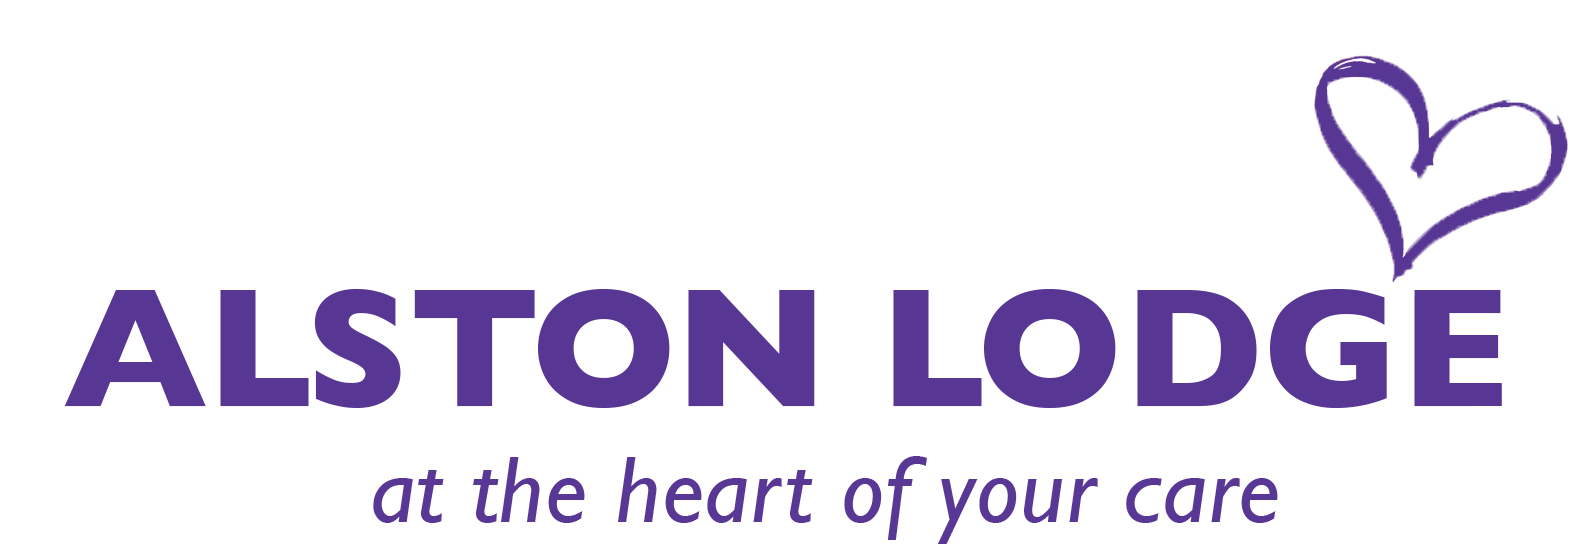 Alston Lodge - At the heart of your care logo booklet